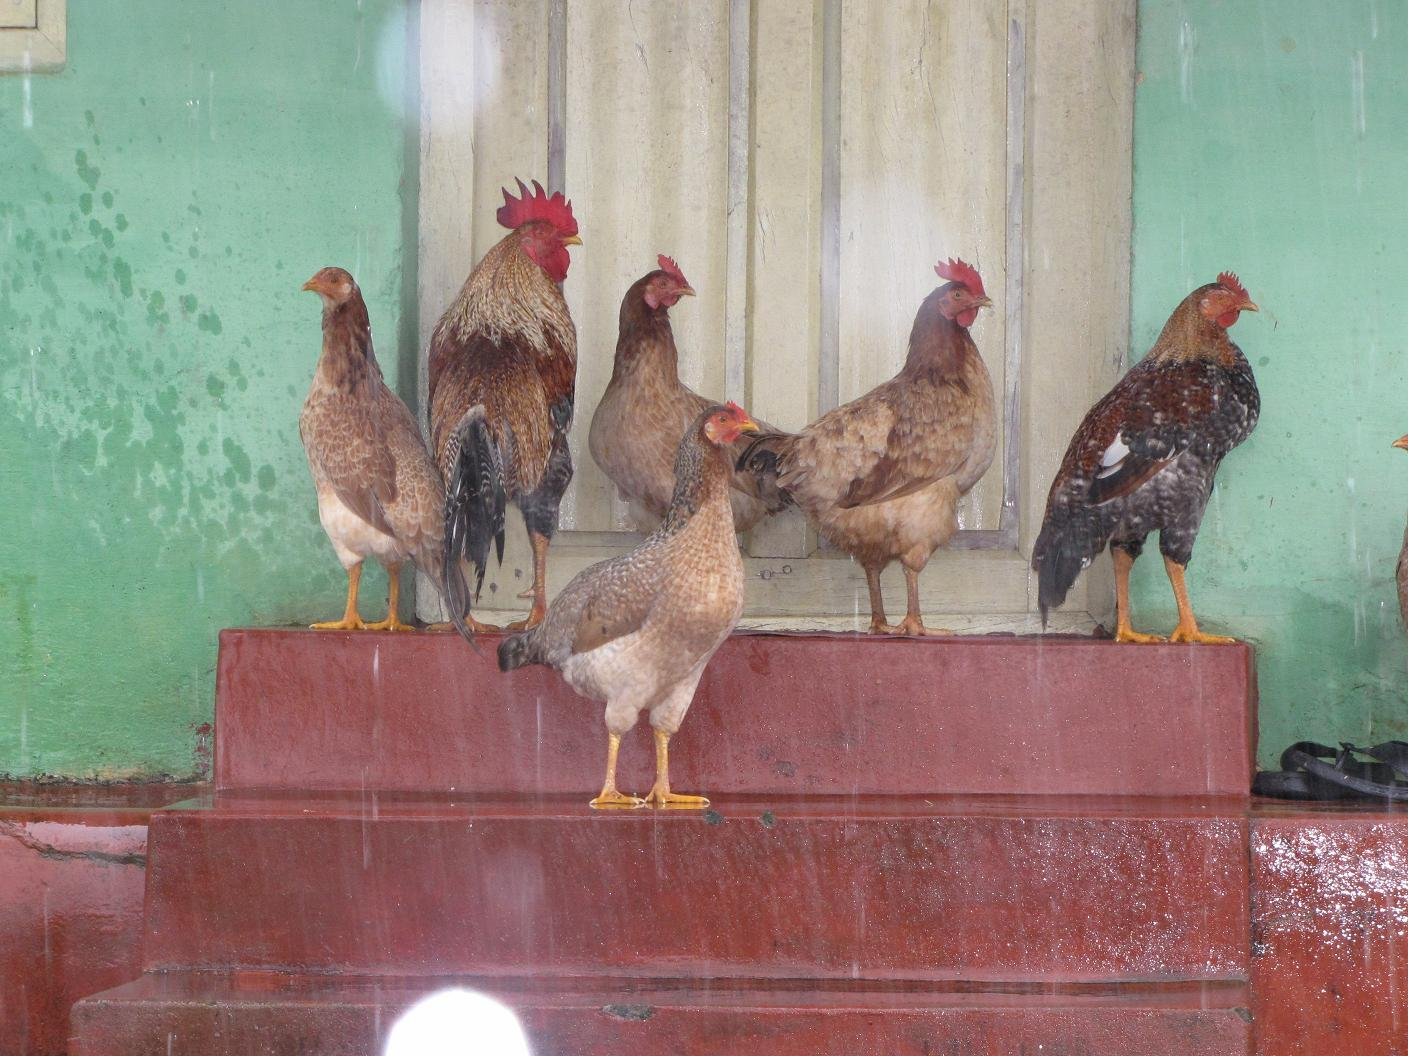 Nati koli (Local chicken) take shelter in the rain at a village near Somwarpet